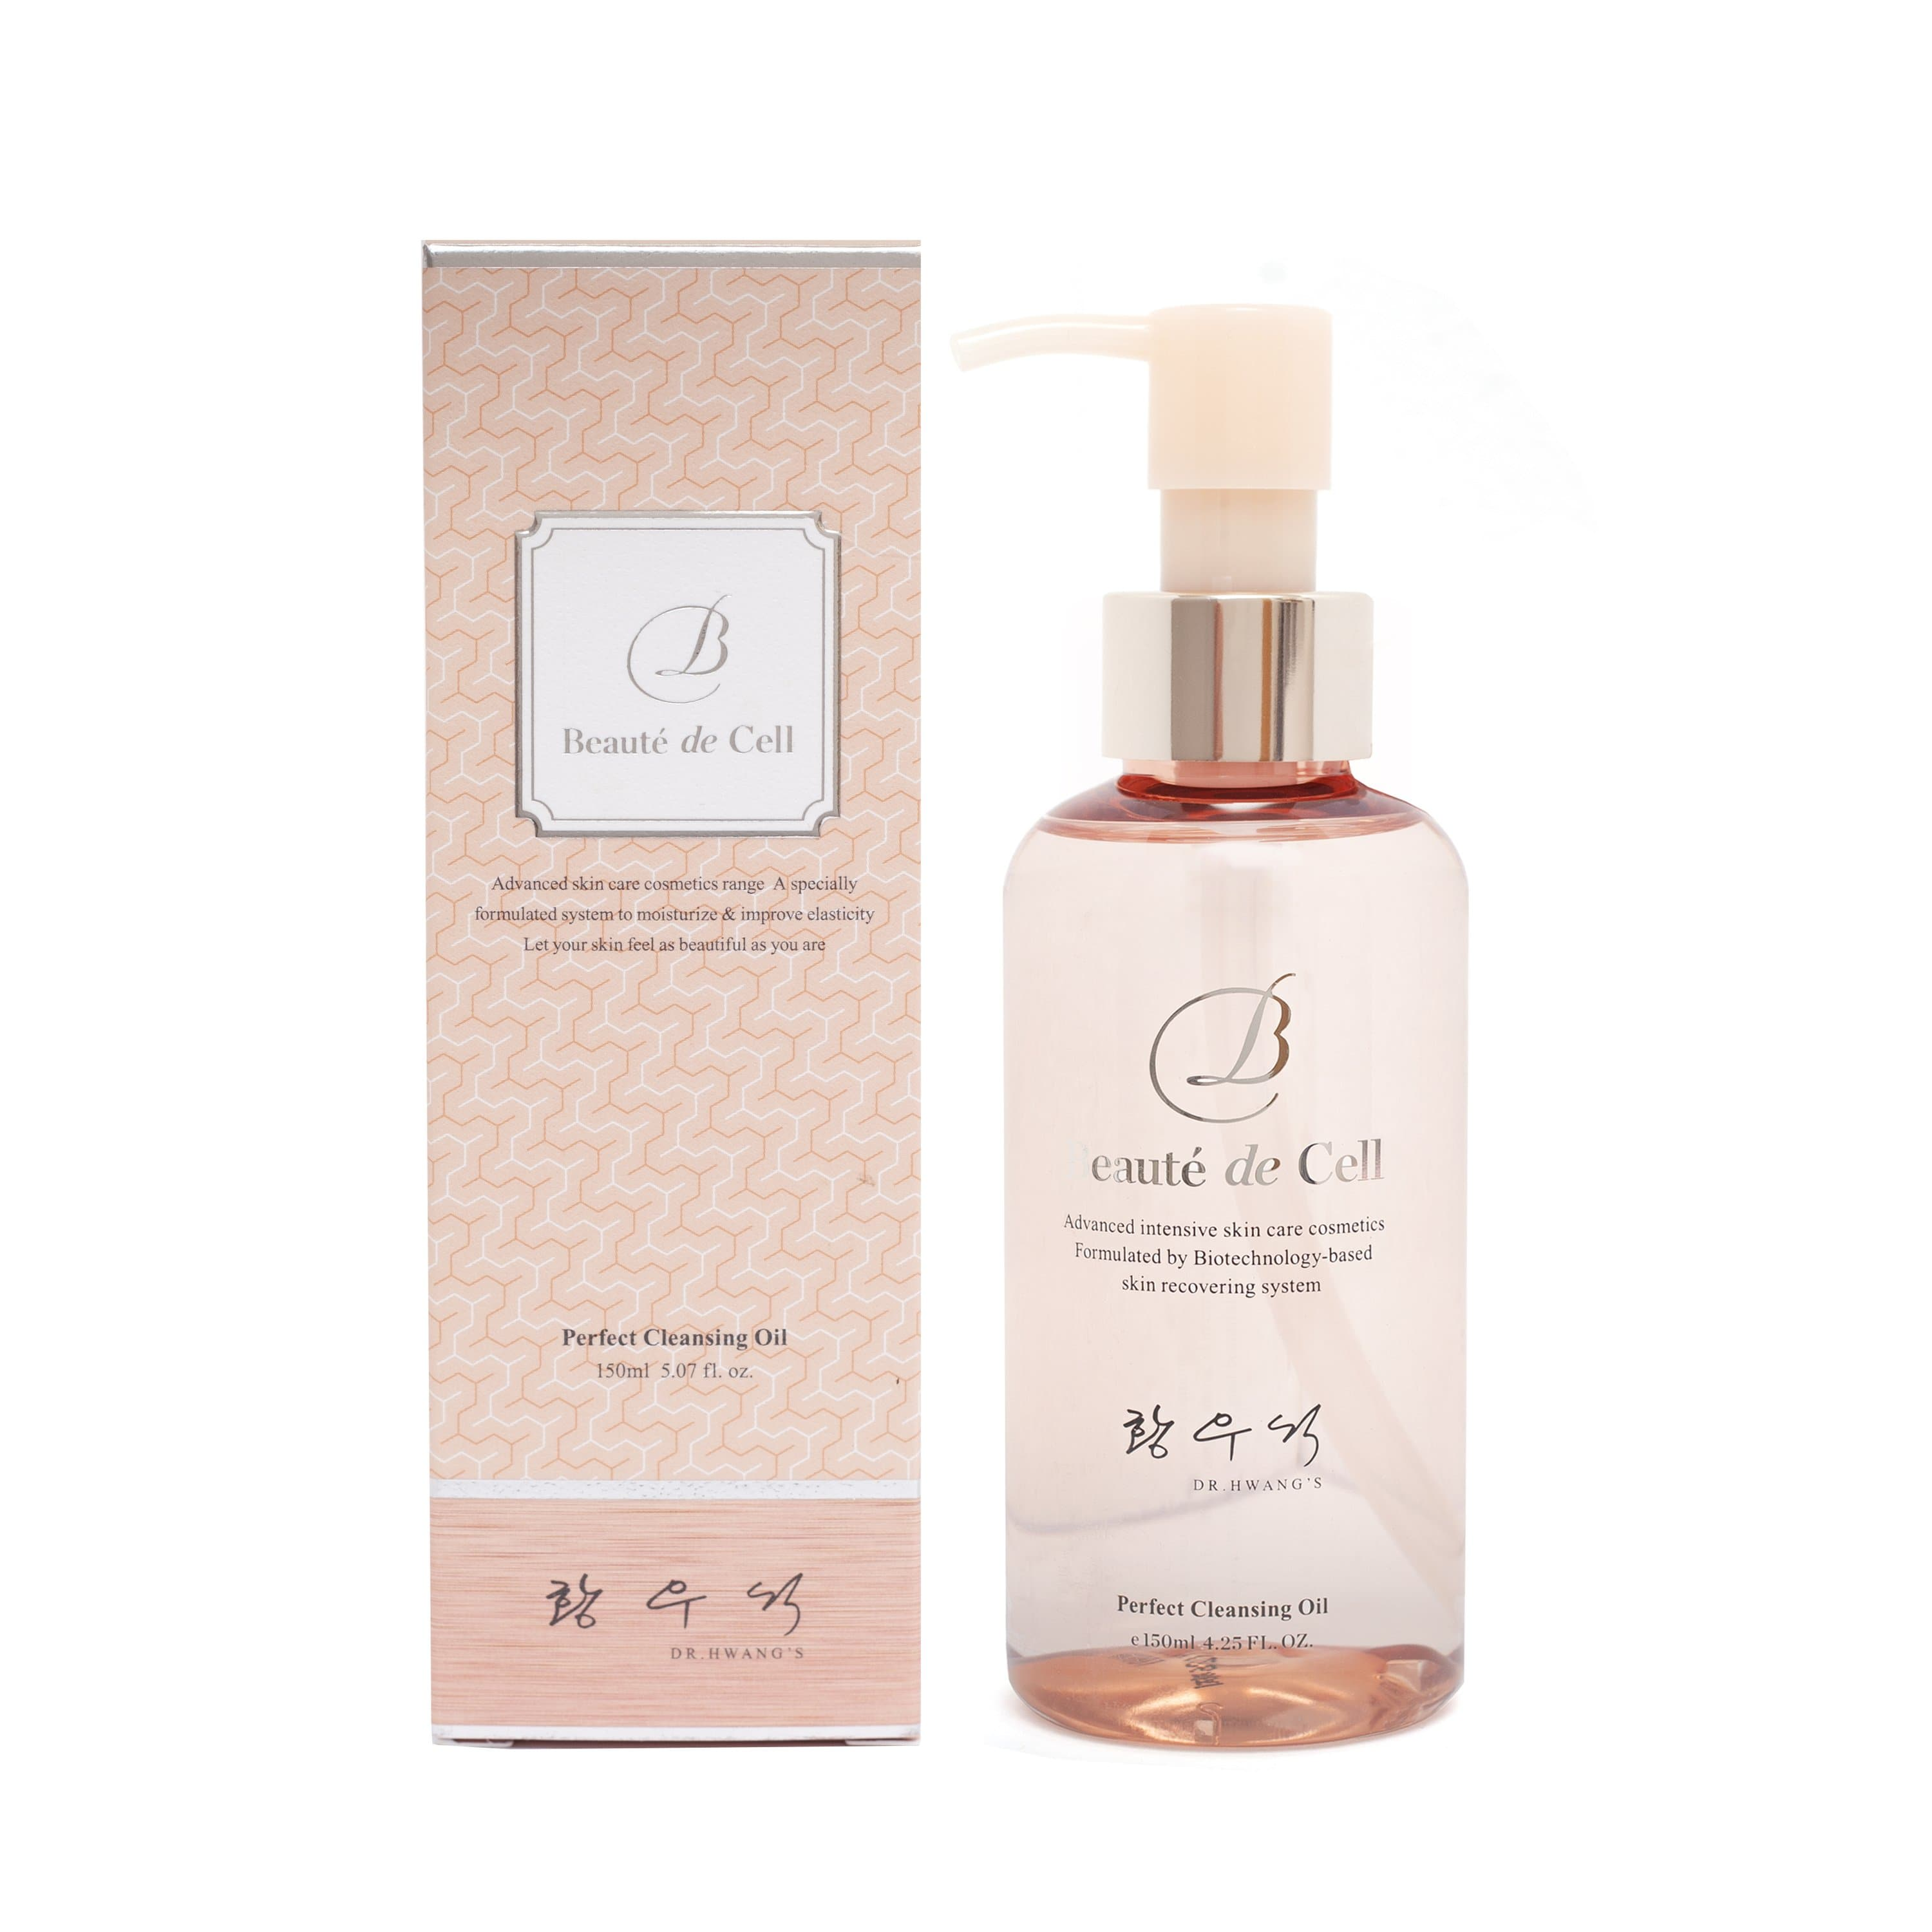 Perfect Cleansing Oil, Make-up Remover - Beauté De Cell - Science To Skin